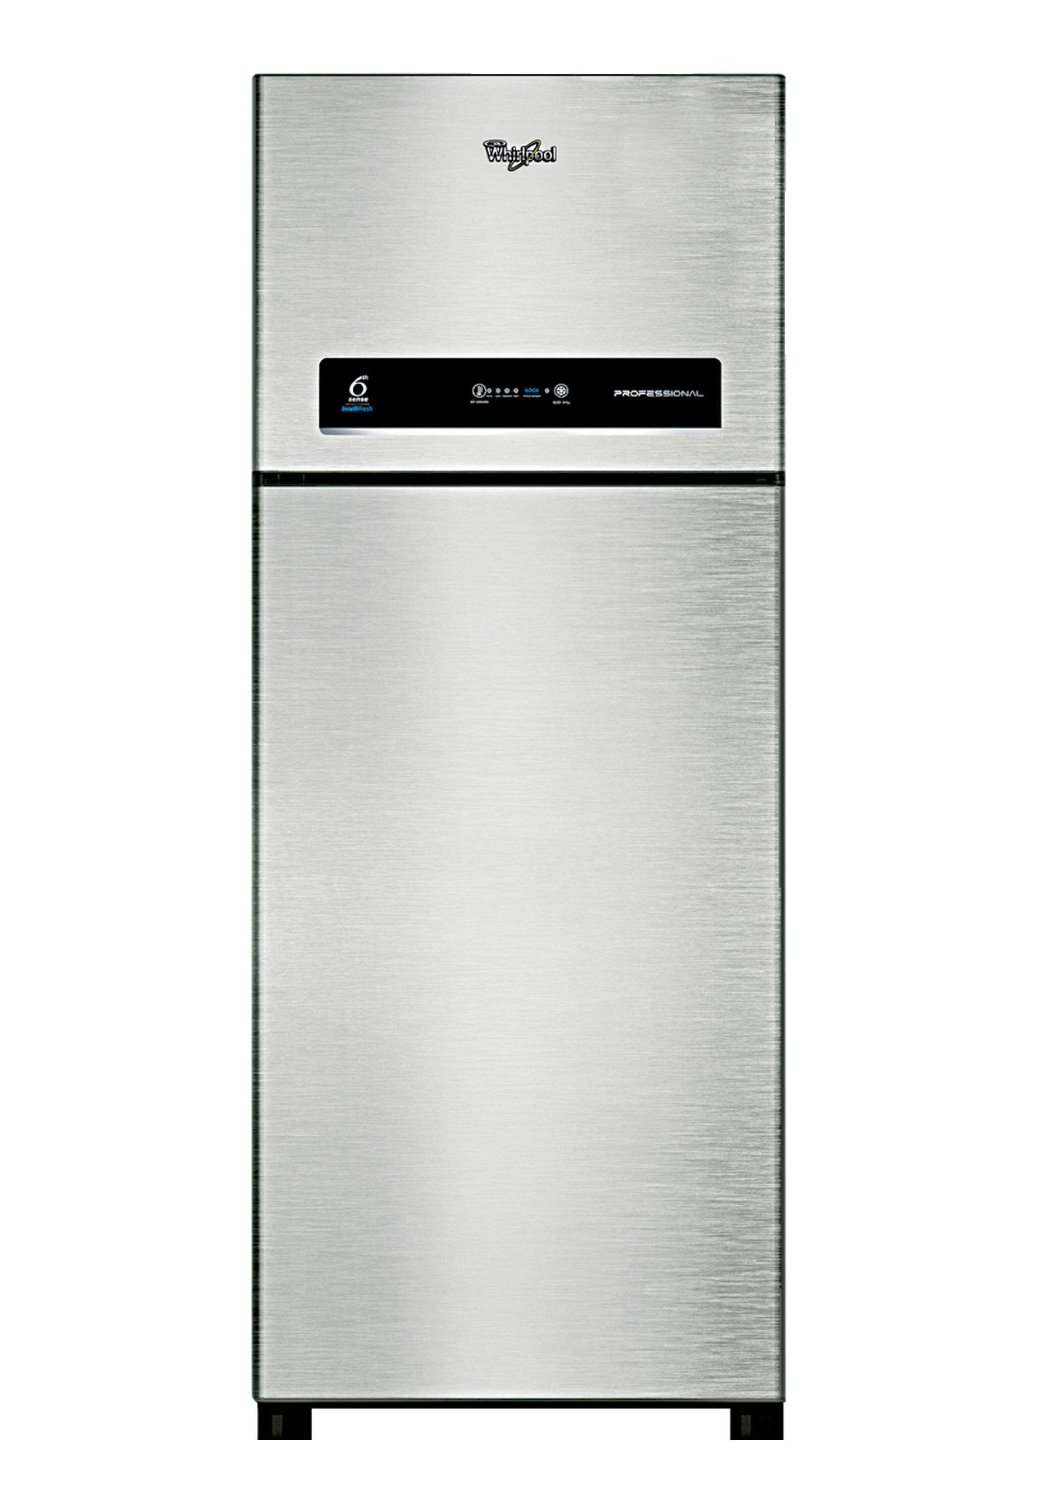 Whirlpool Pro 465 Elite Double-door Refrigerator 445 Ltrs For Rs 39990